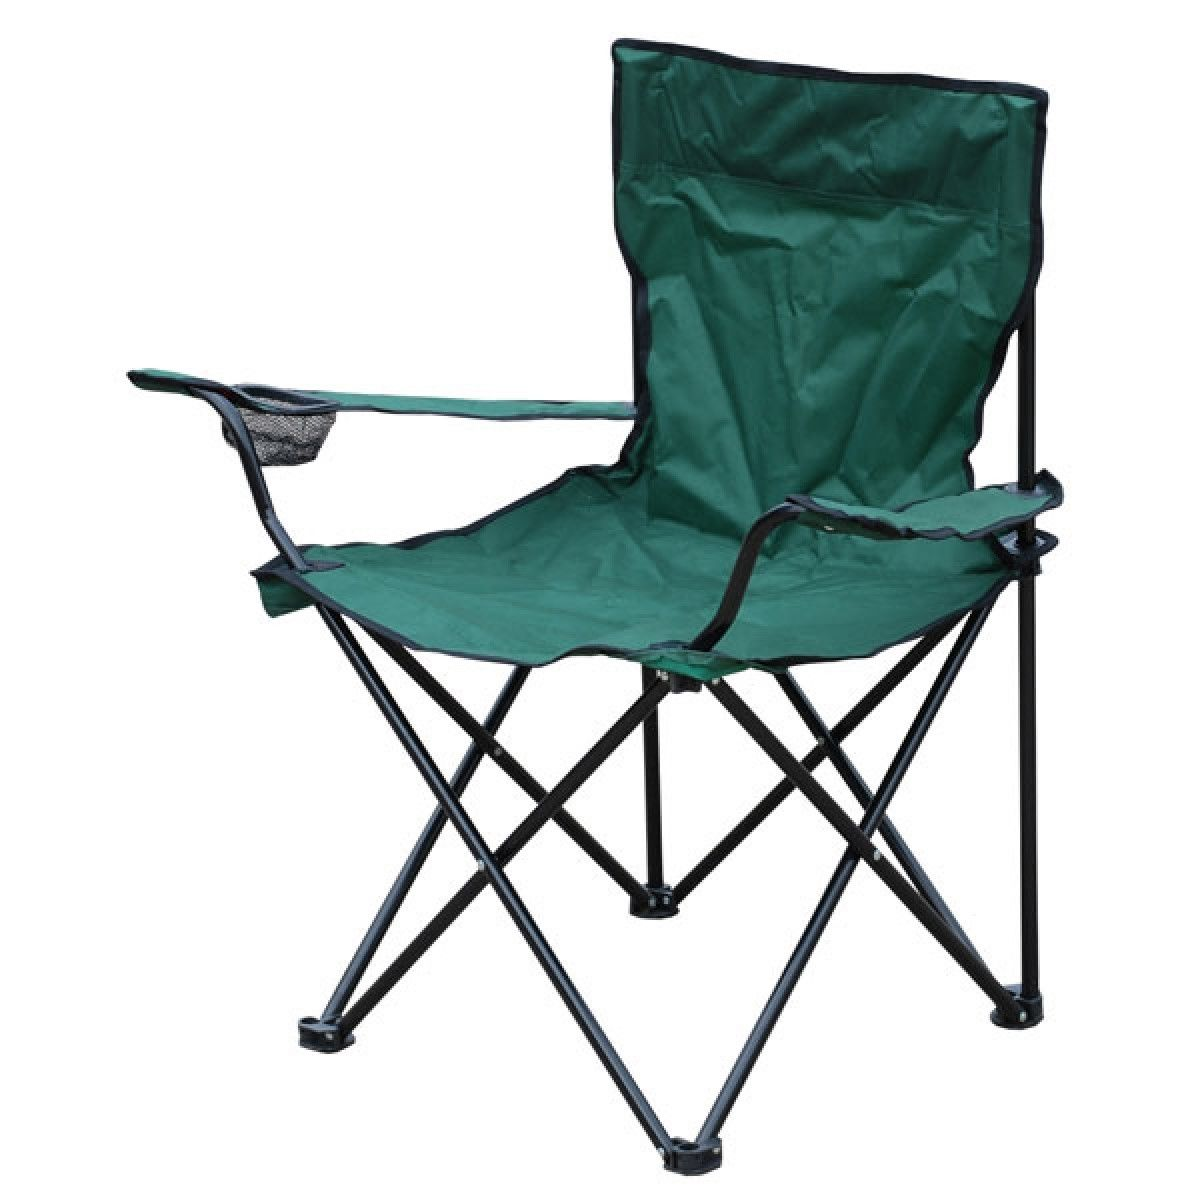 Fold Up Outdoor Chairs Brand New Lightweight Portable Outdoor Camping Garden